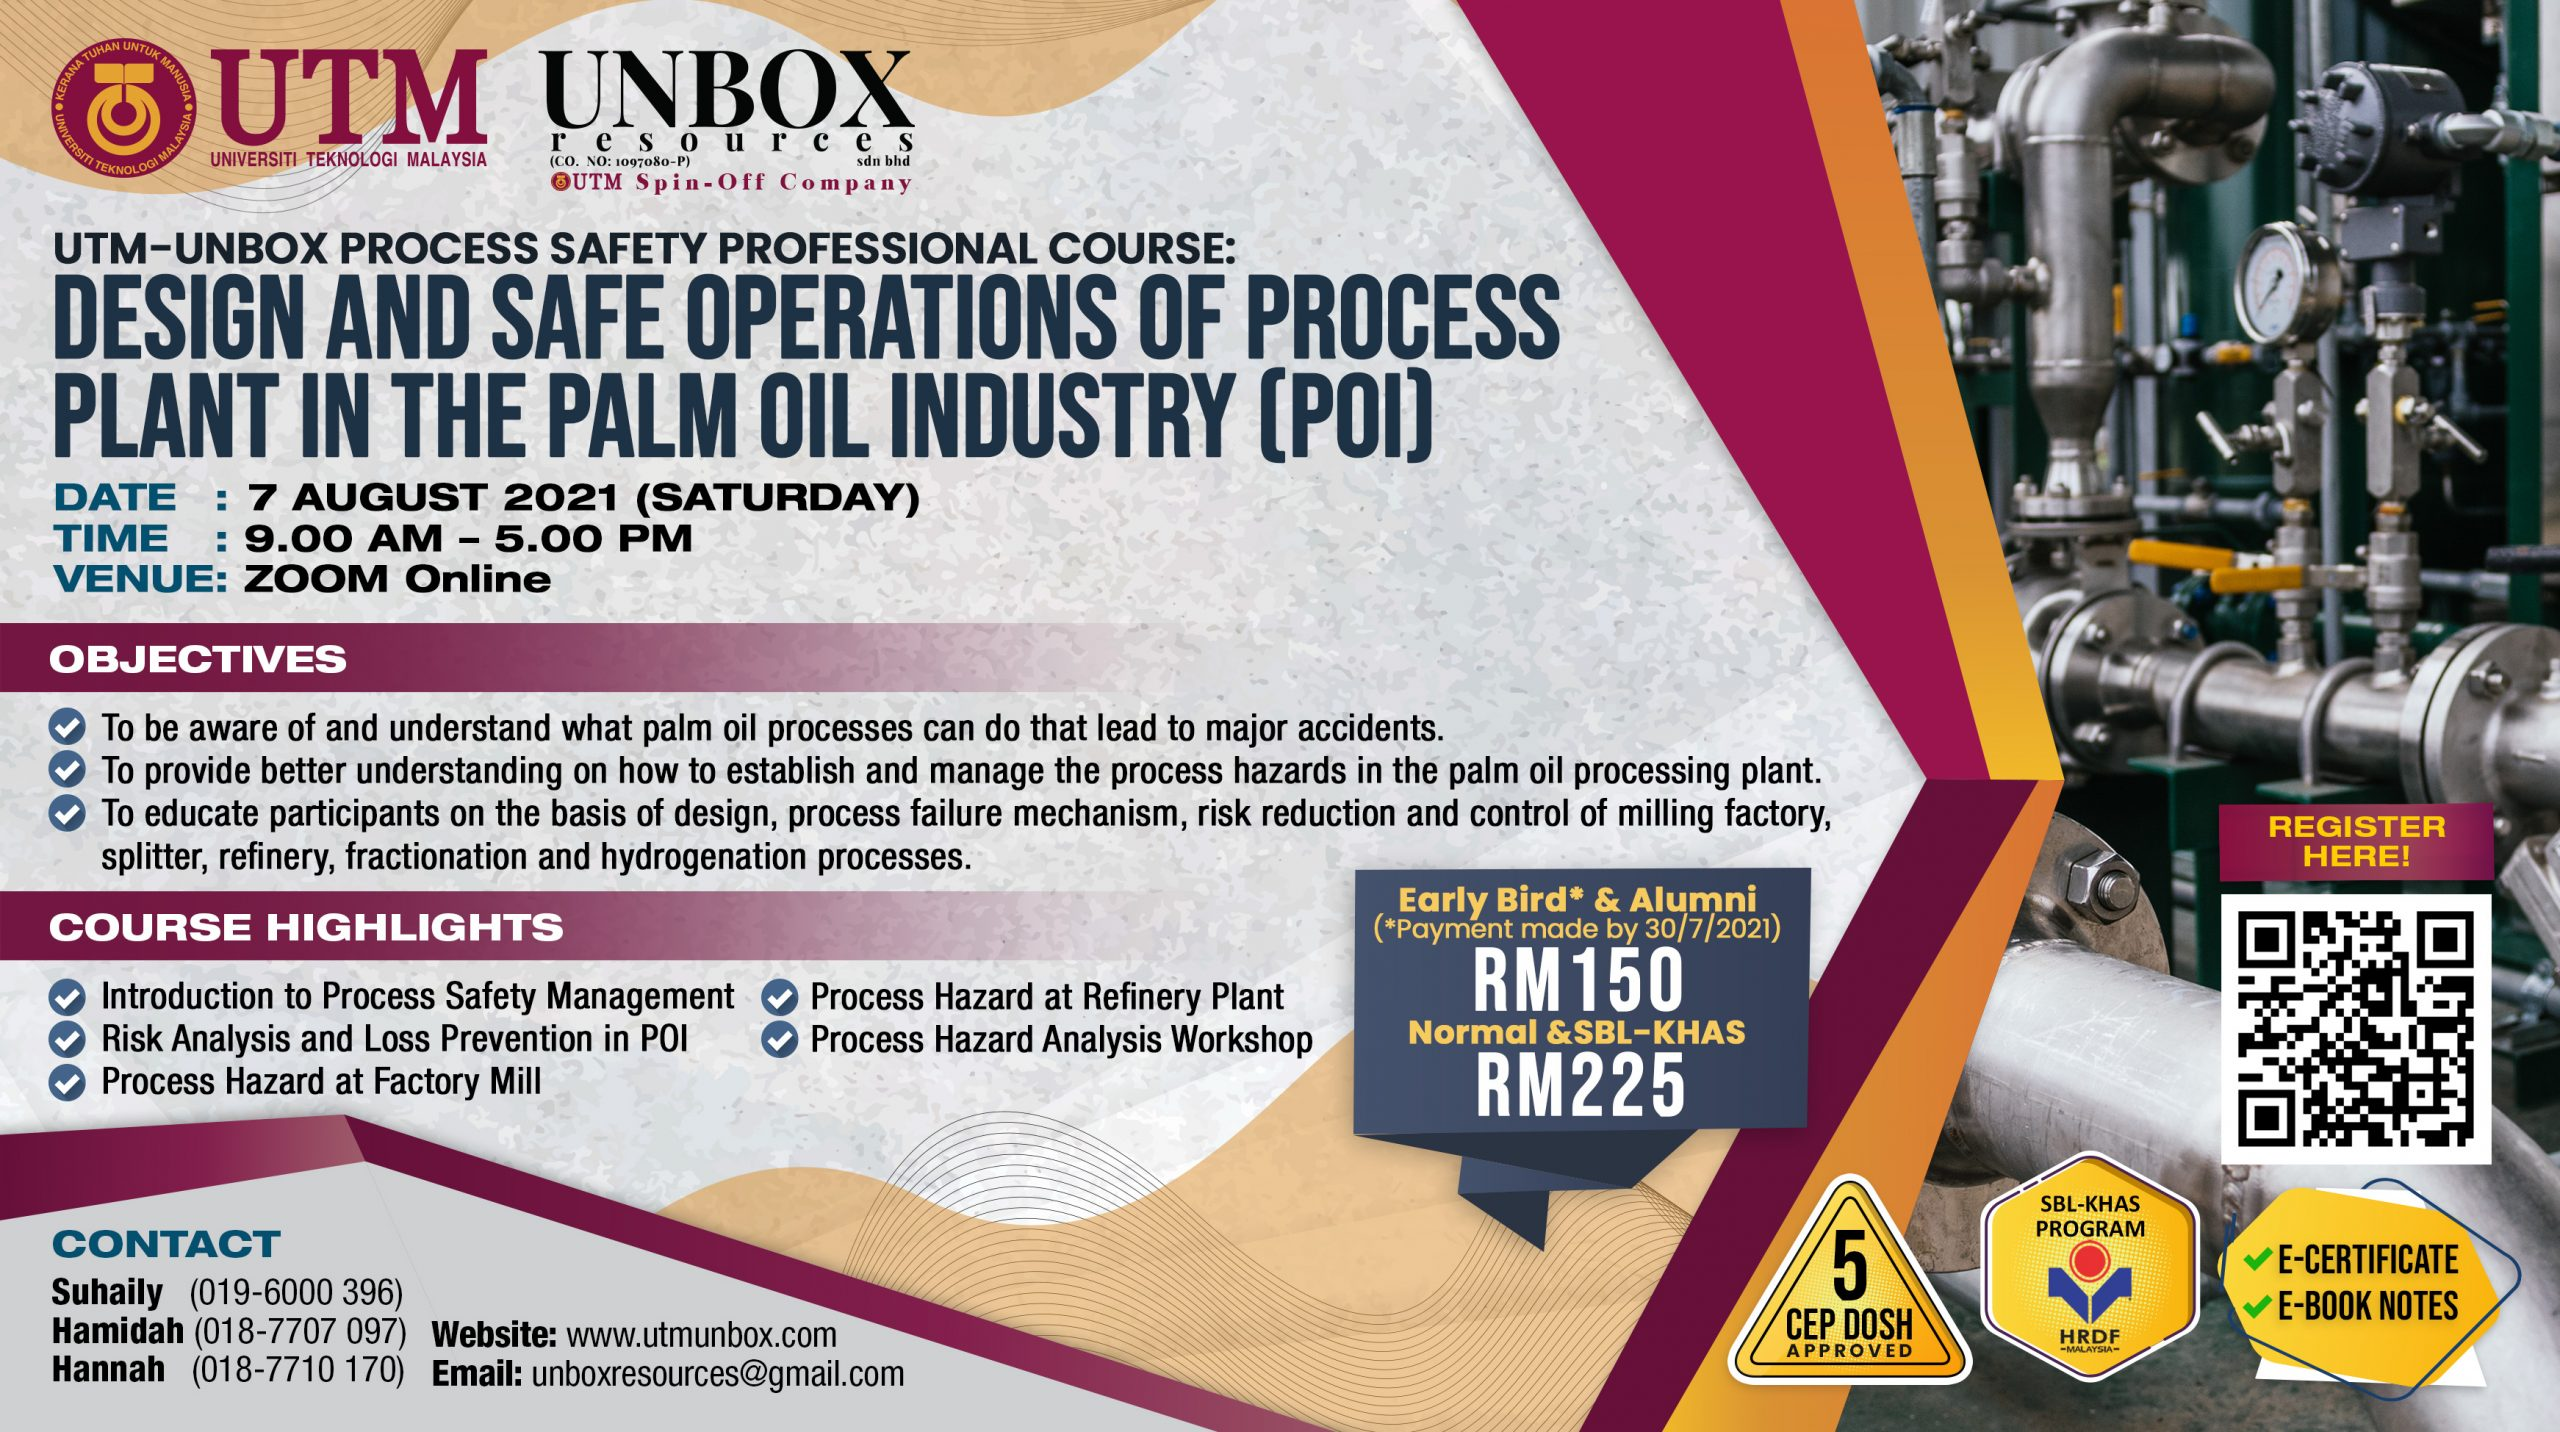 DESIGN AND SAFE OPERATIONS OF PROCESS PLANT IN THE PALM OIL INDUSTRY (POI)